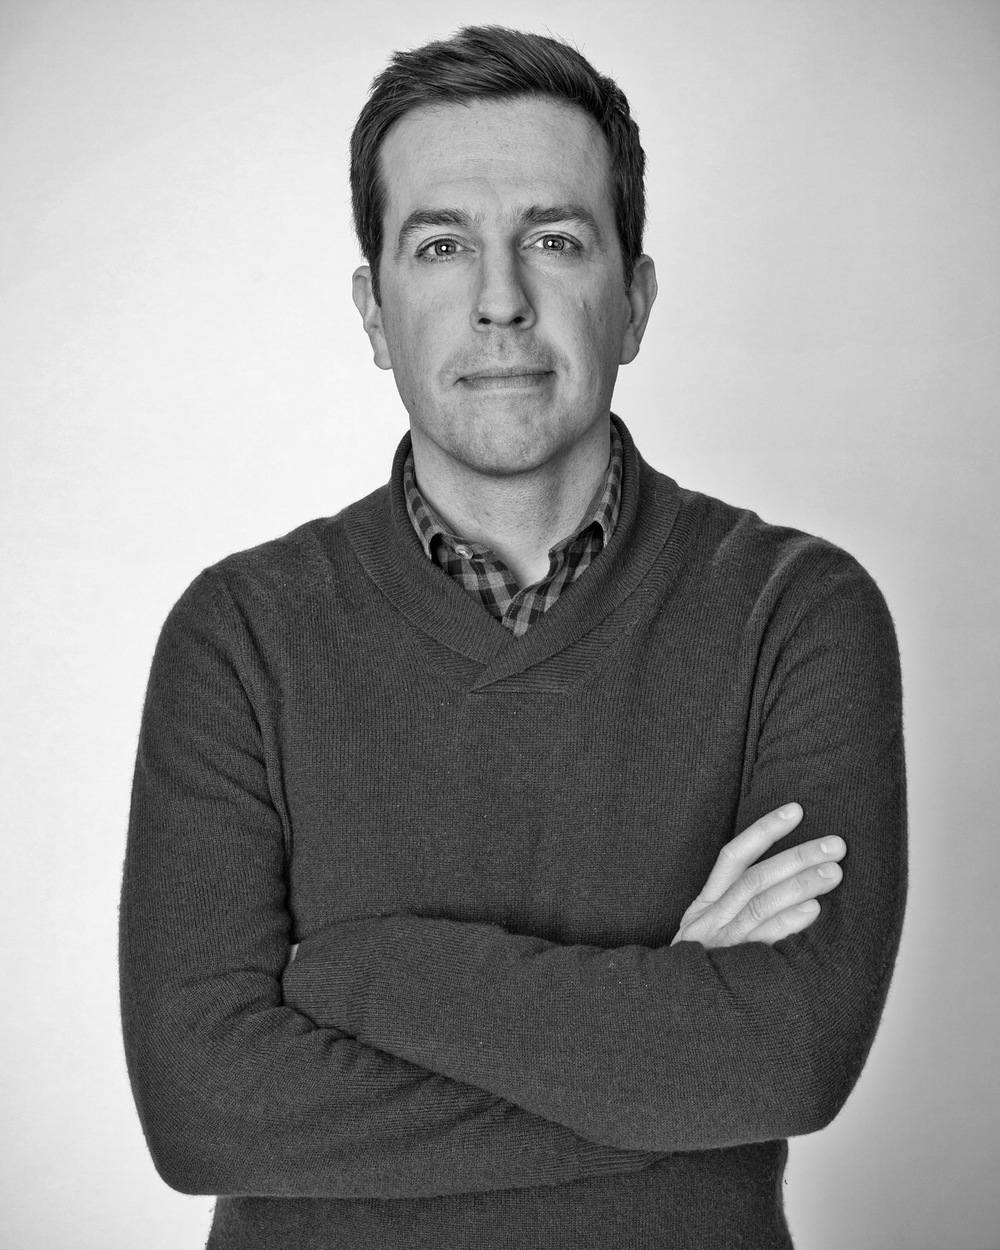 ed helms headshot 2 bw.jpg